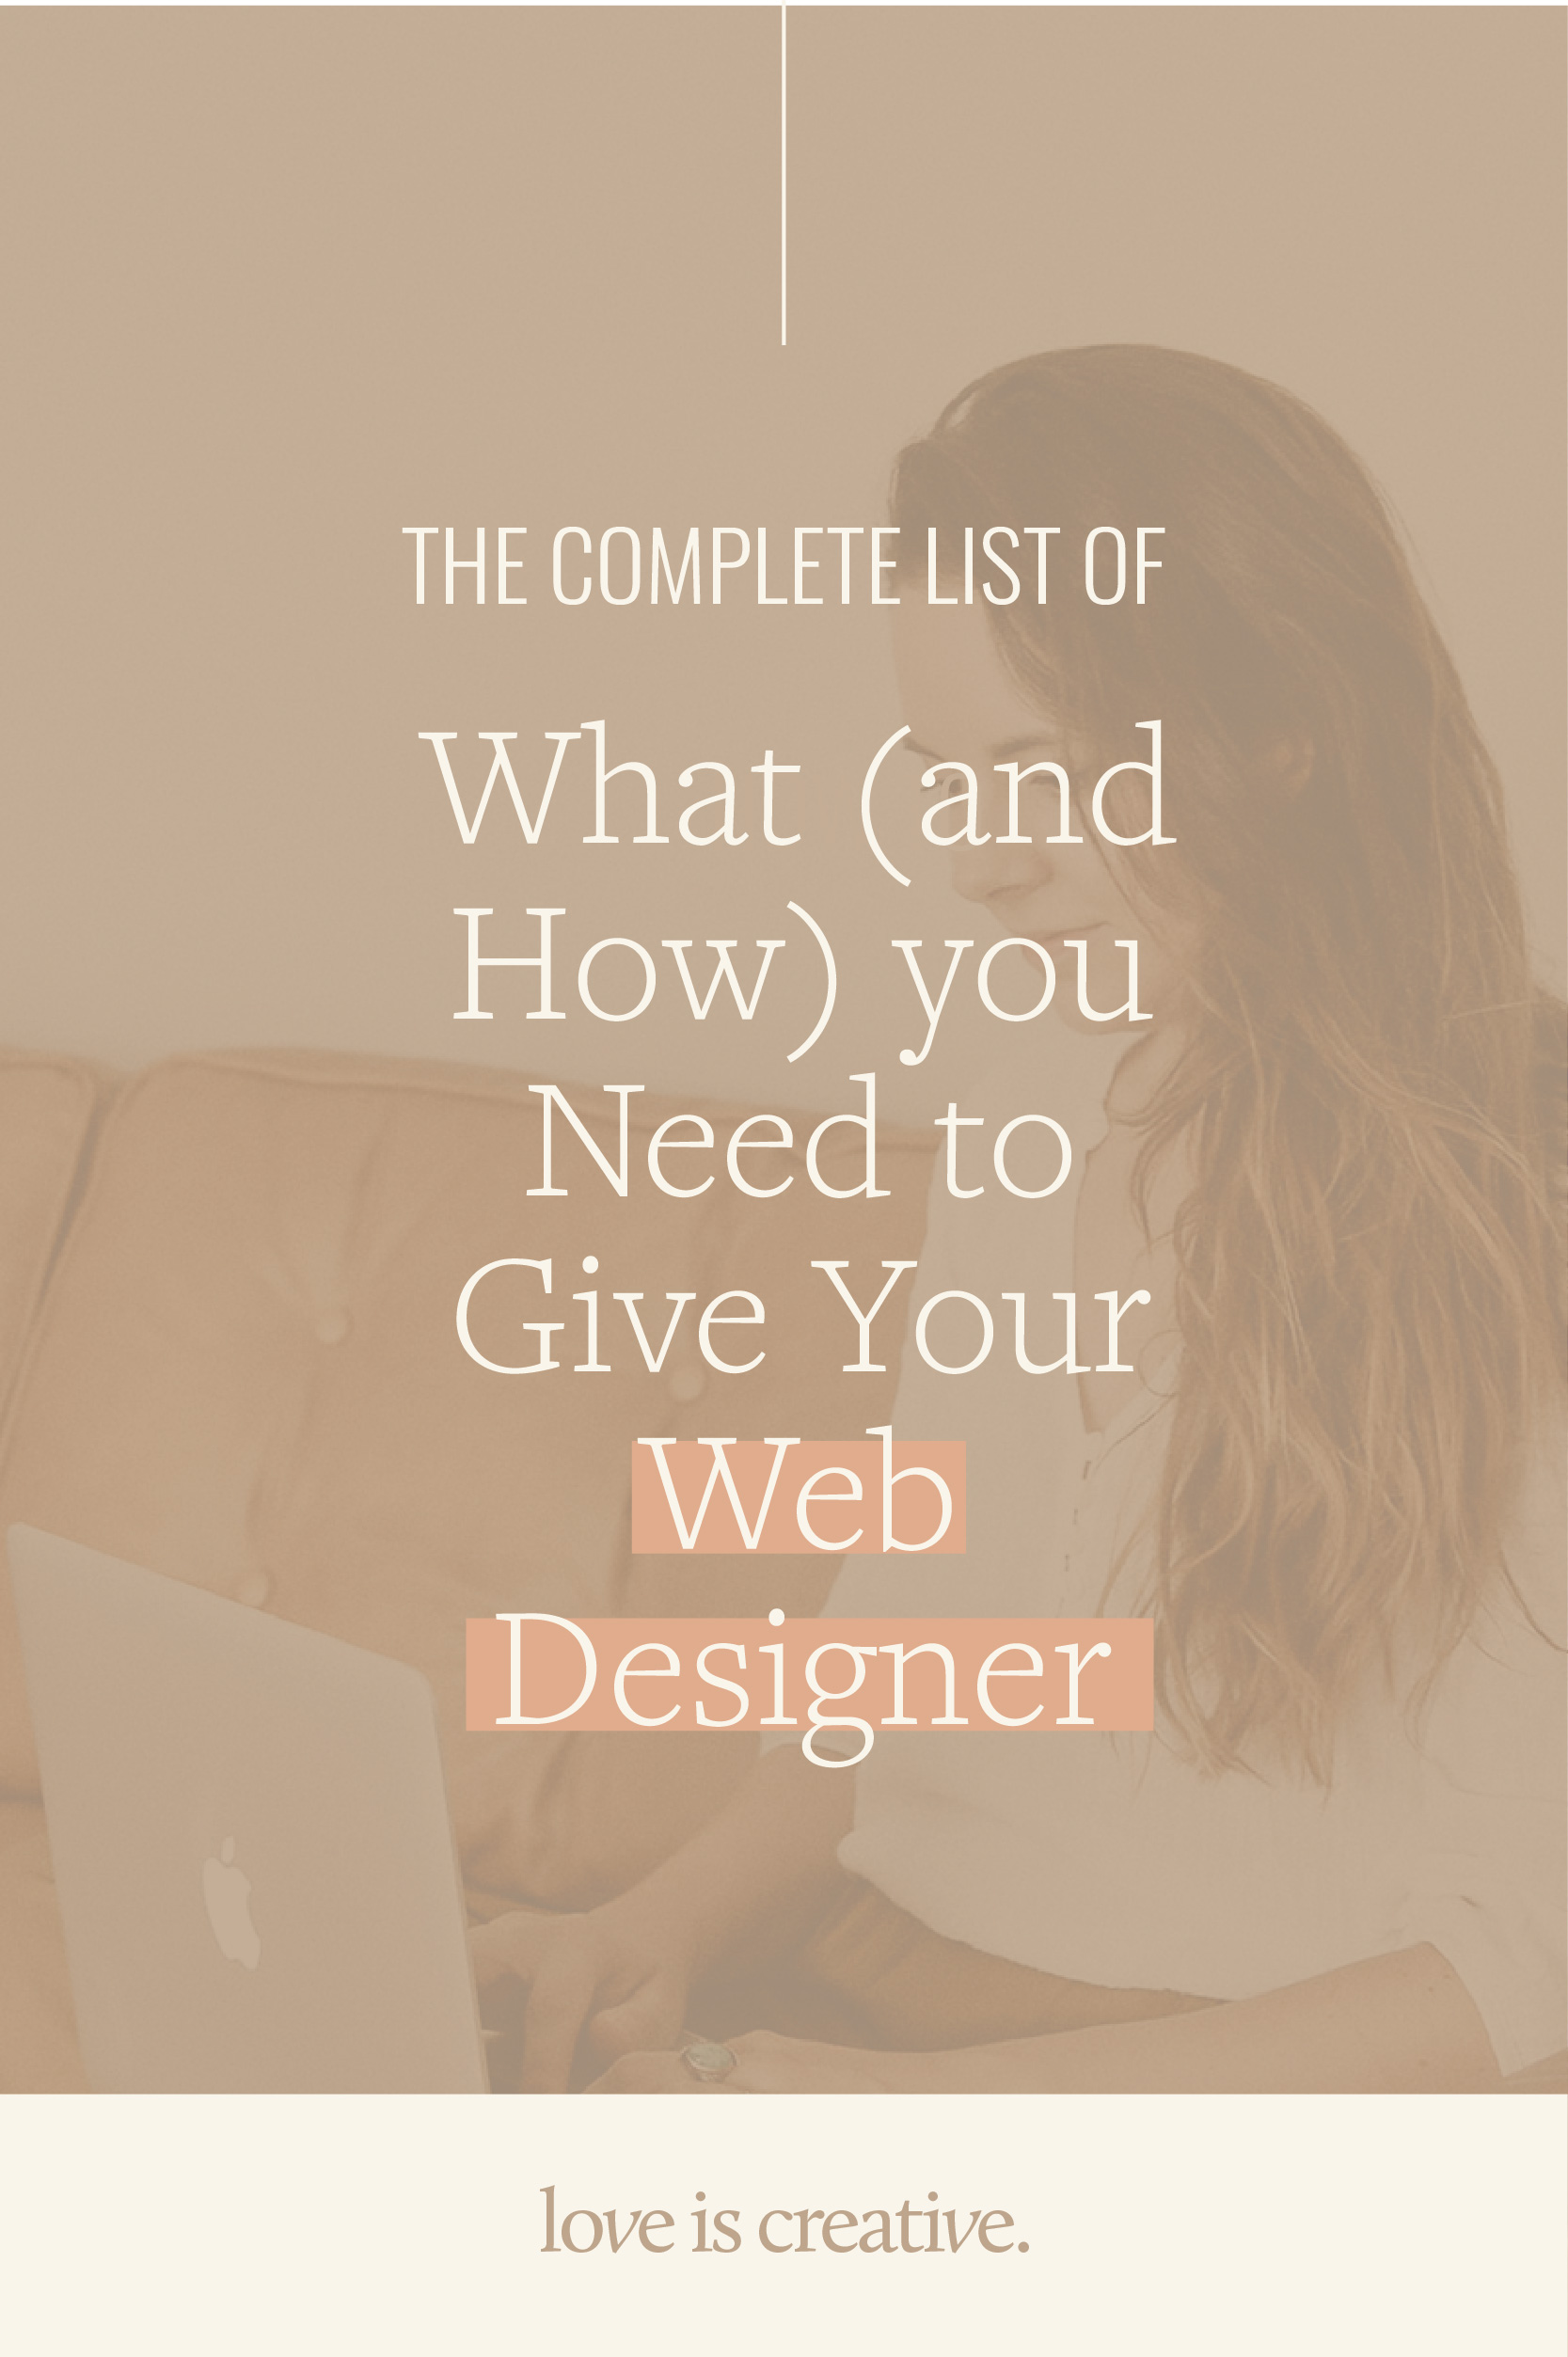 The Complete List of What (and How) you Need to Give your Web Designer